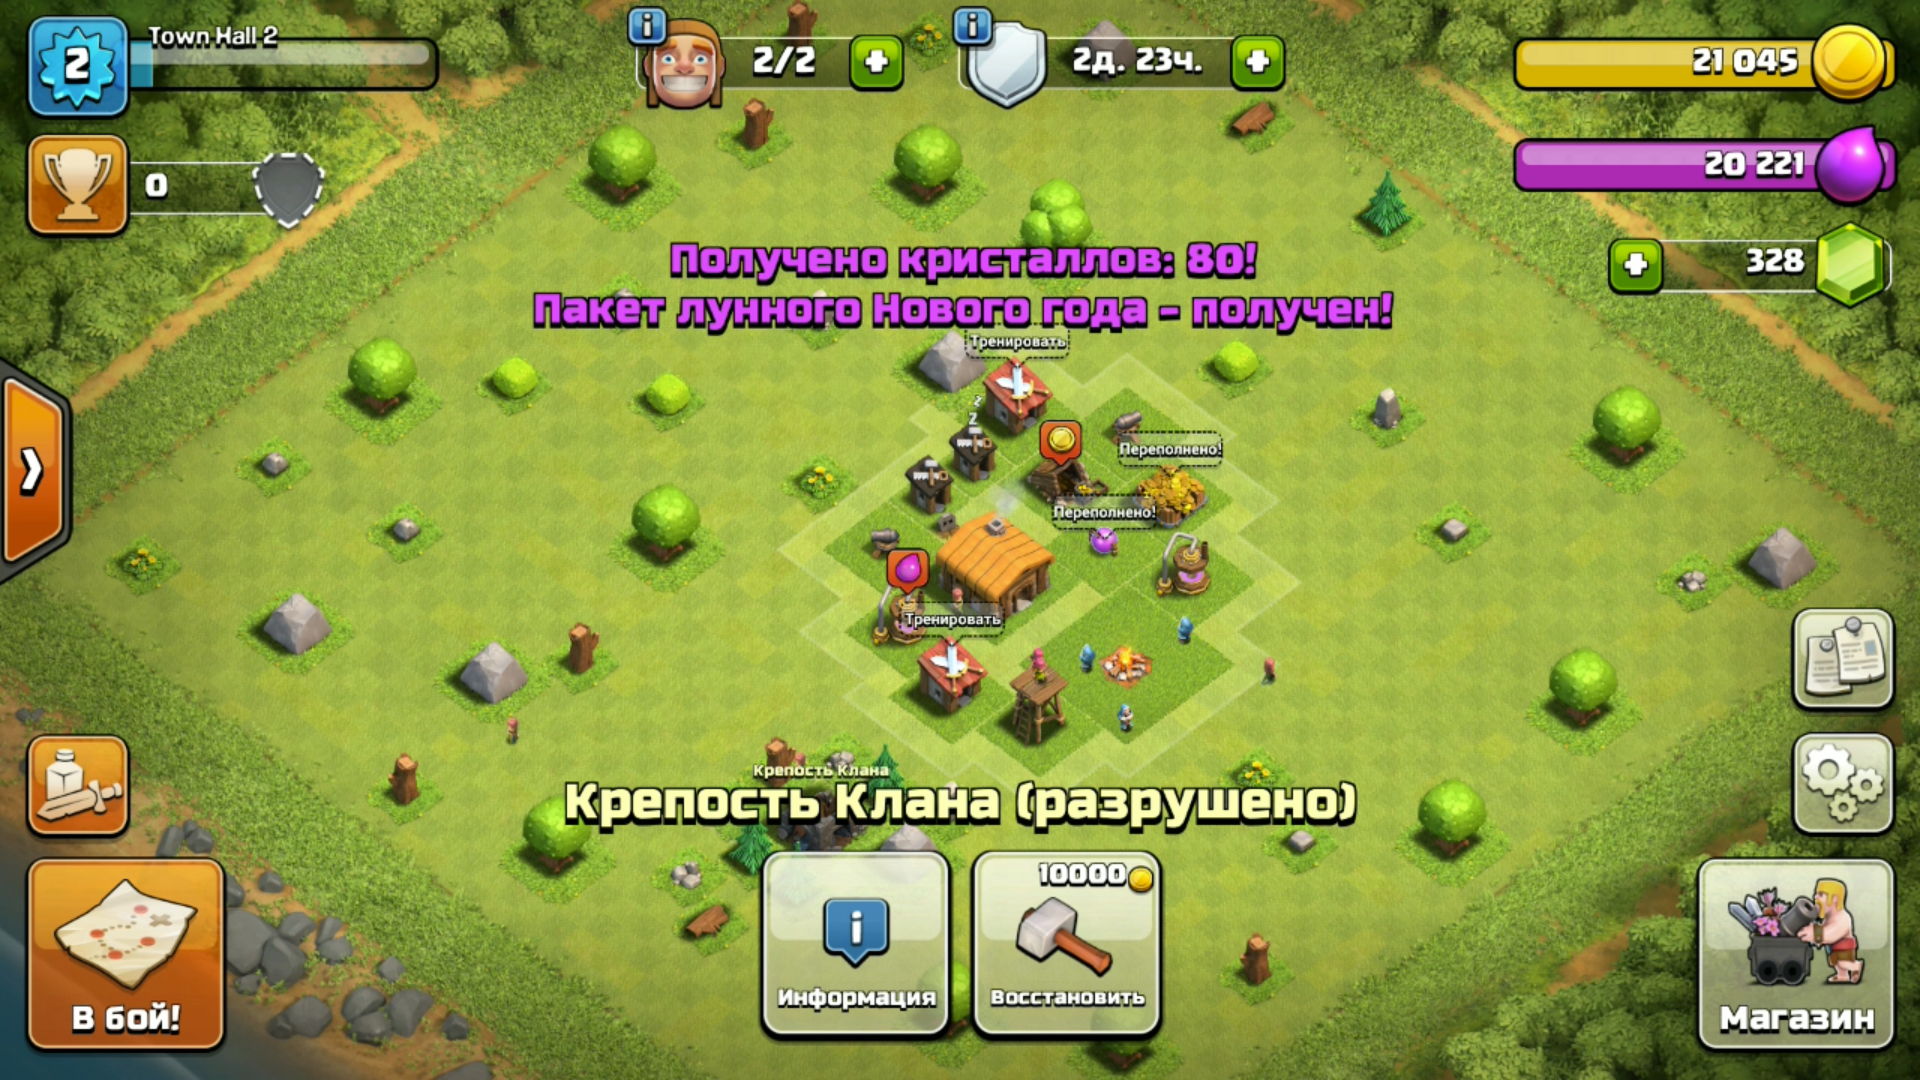 Town Hall 2 Clan